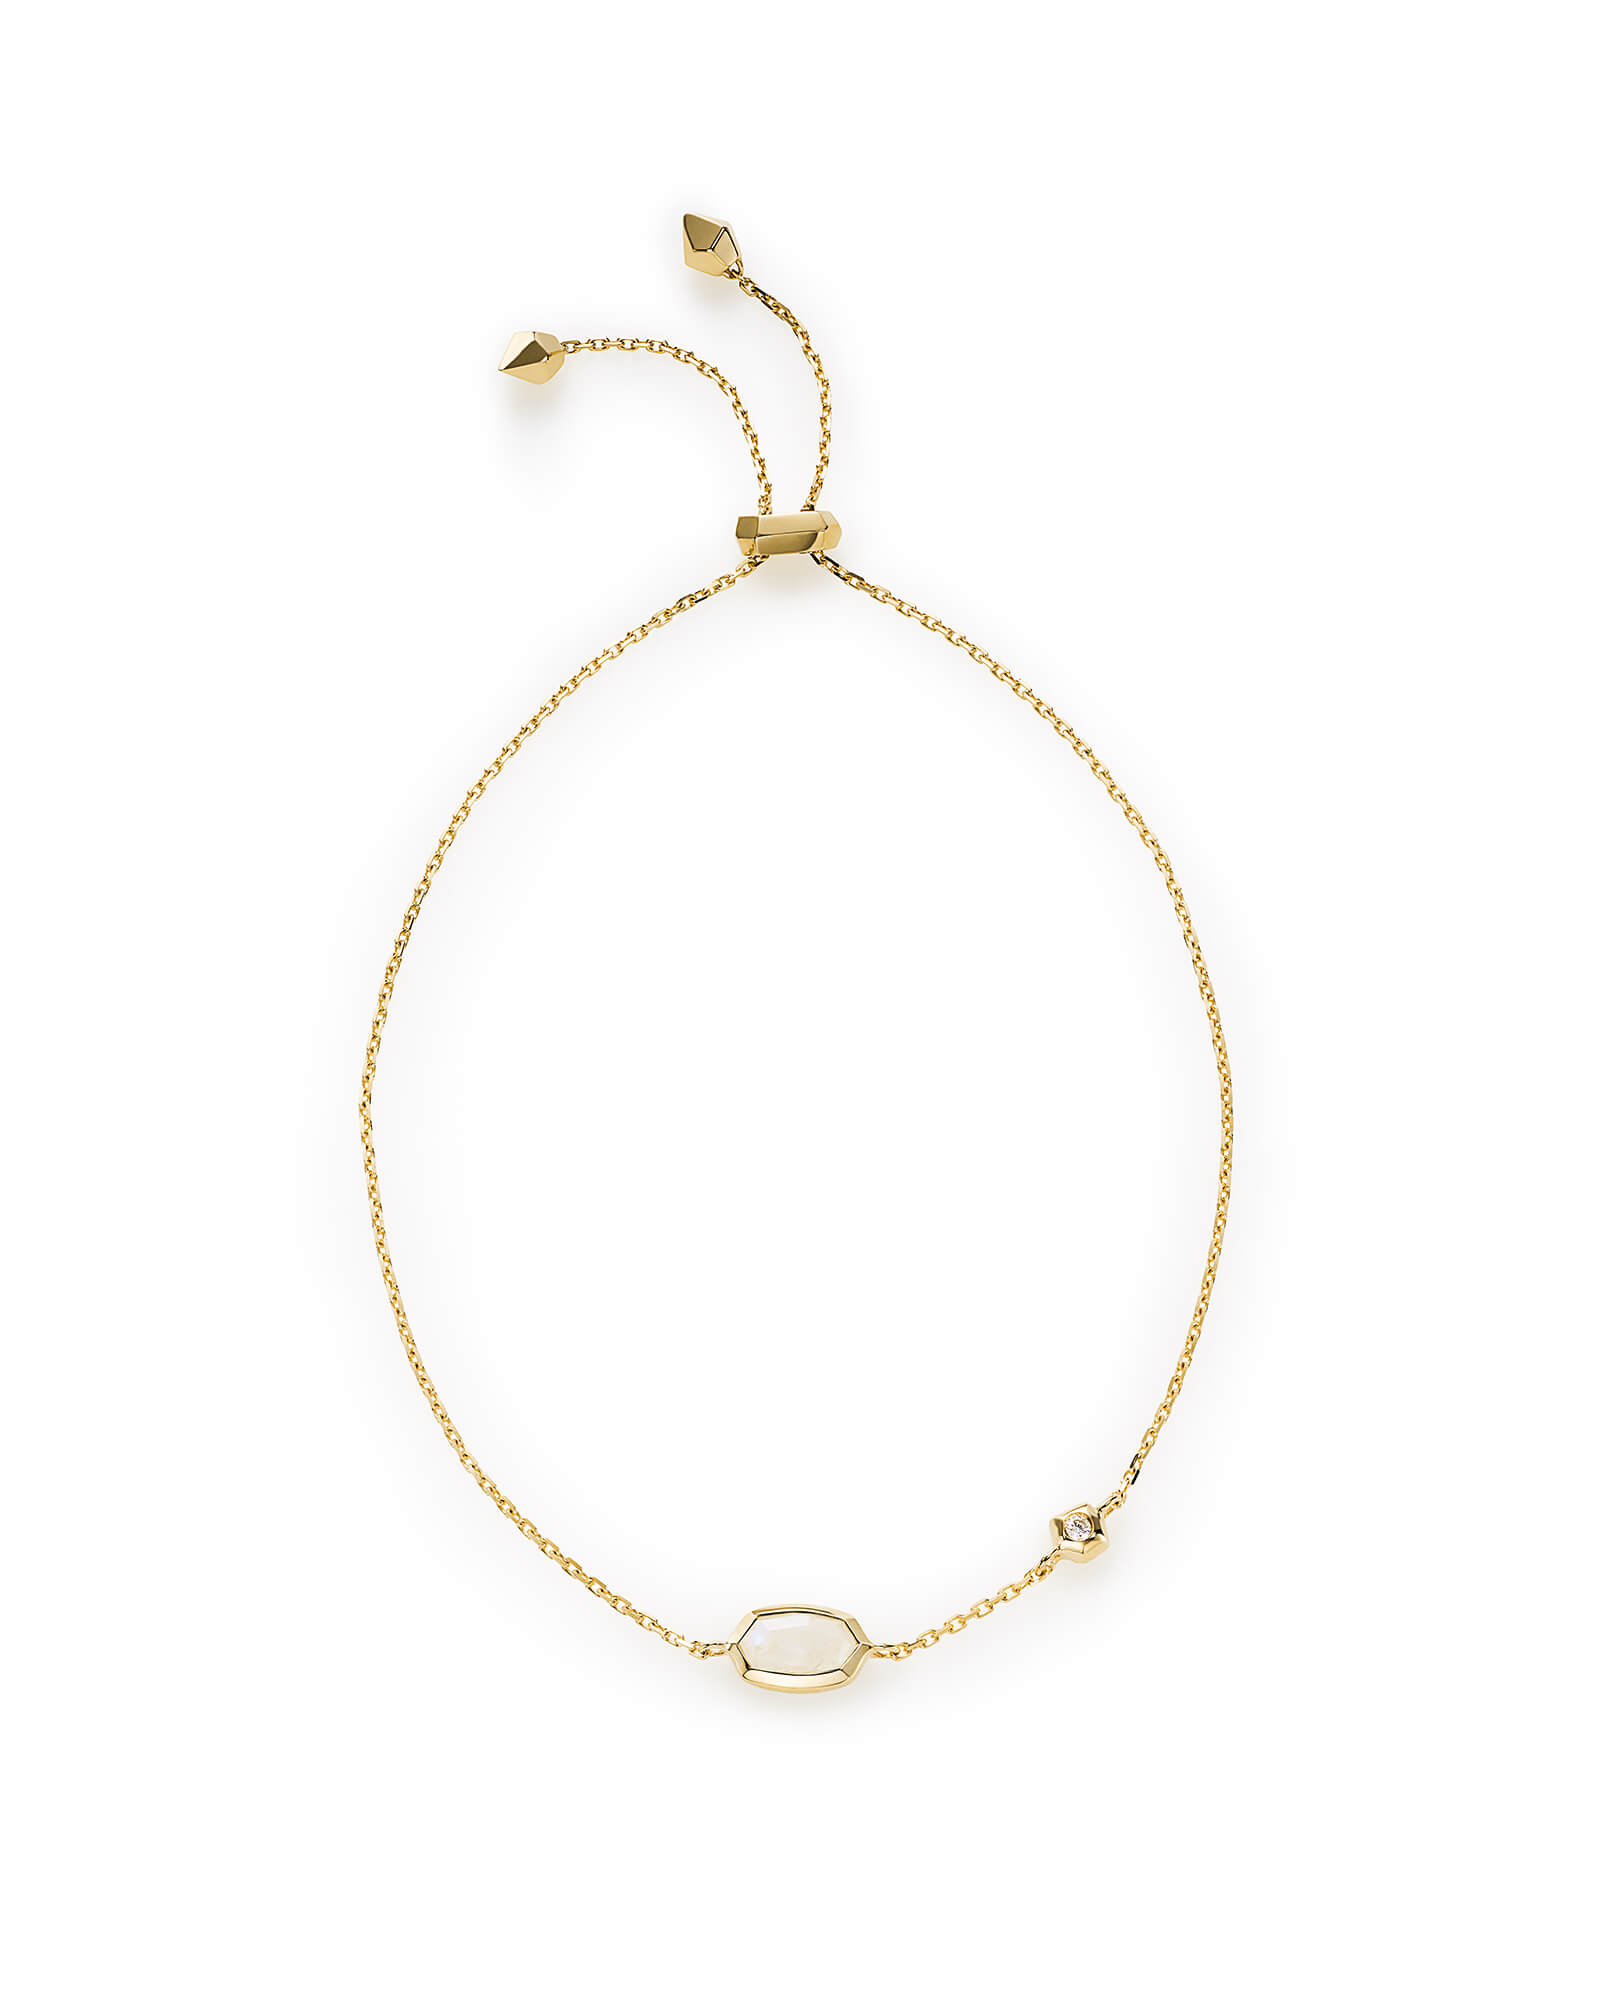 Benson Adjustable Bracelet in Rainbow Moonstone and 14k Yellow Gold